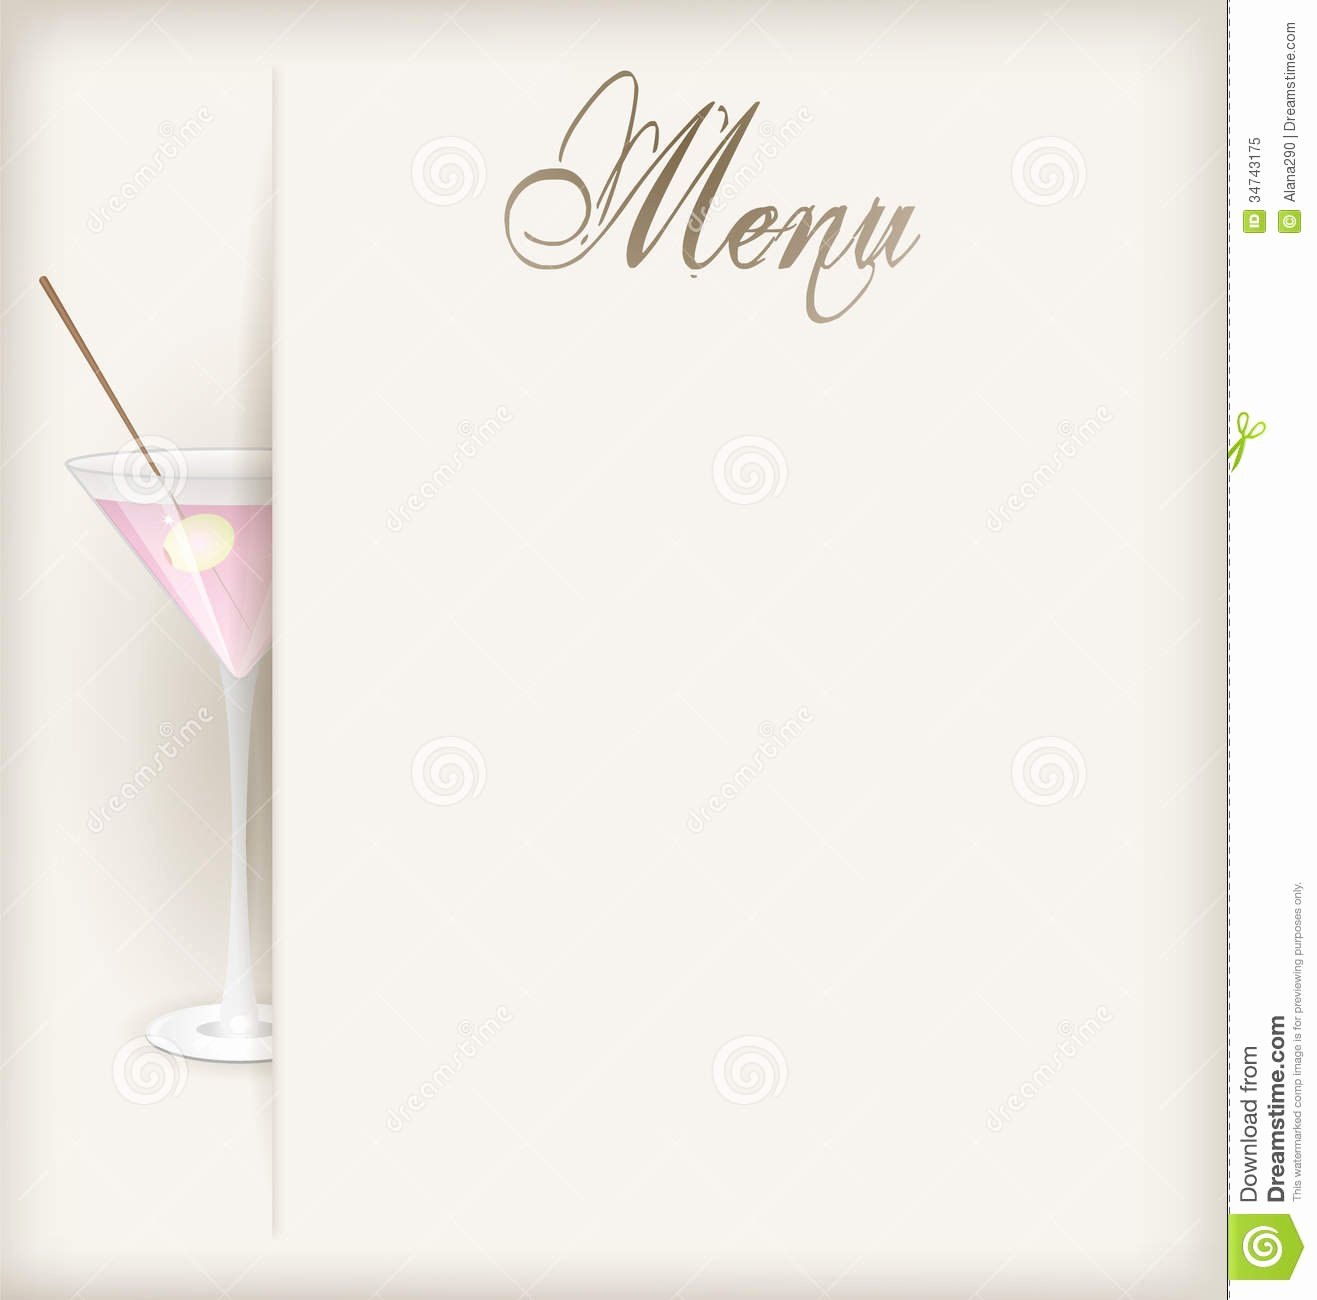 Cocktail Menu Template Free Elegant Menu with Martini Stock Vector Illustration Of ornament